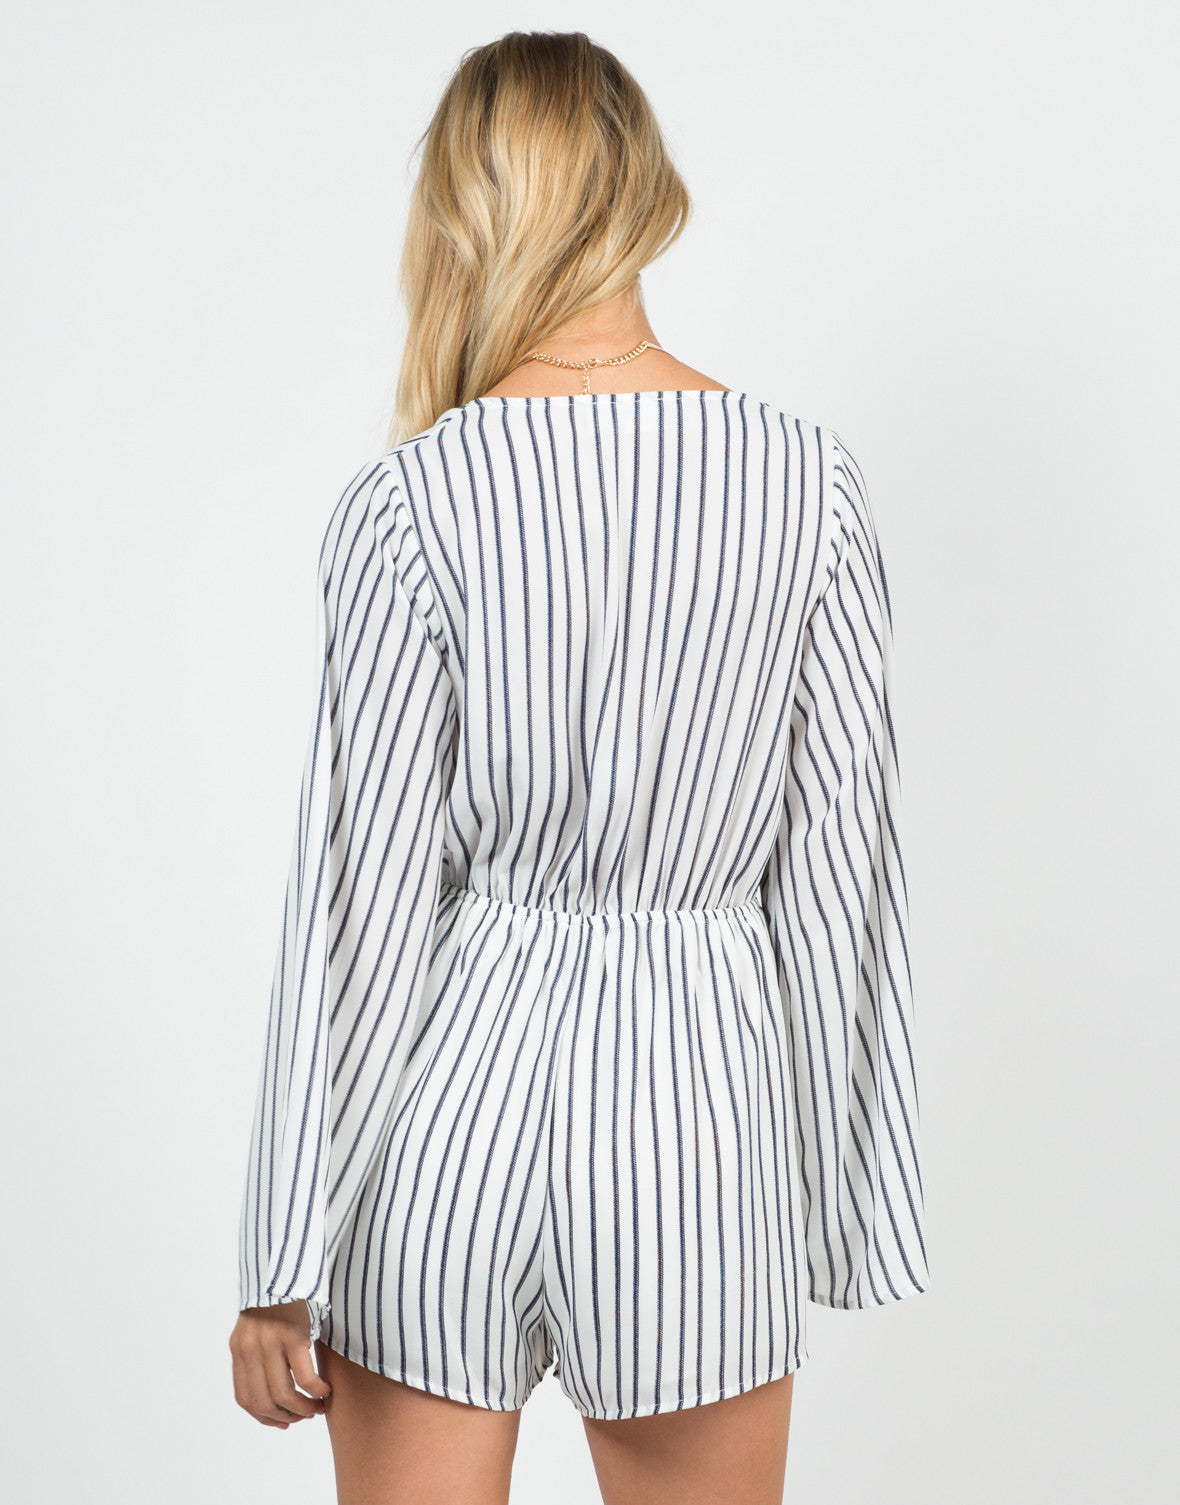 Back View of Knot It Striped Romper